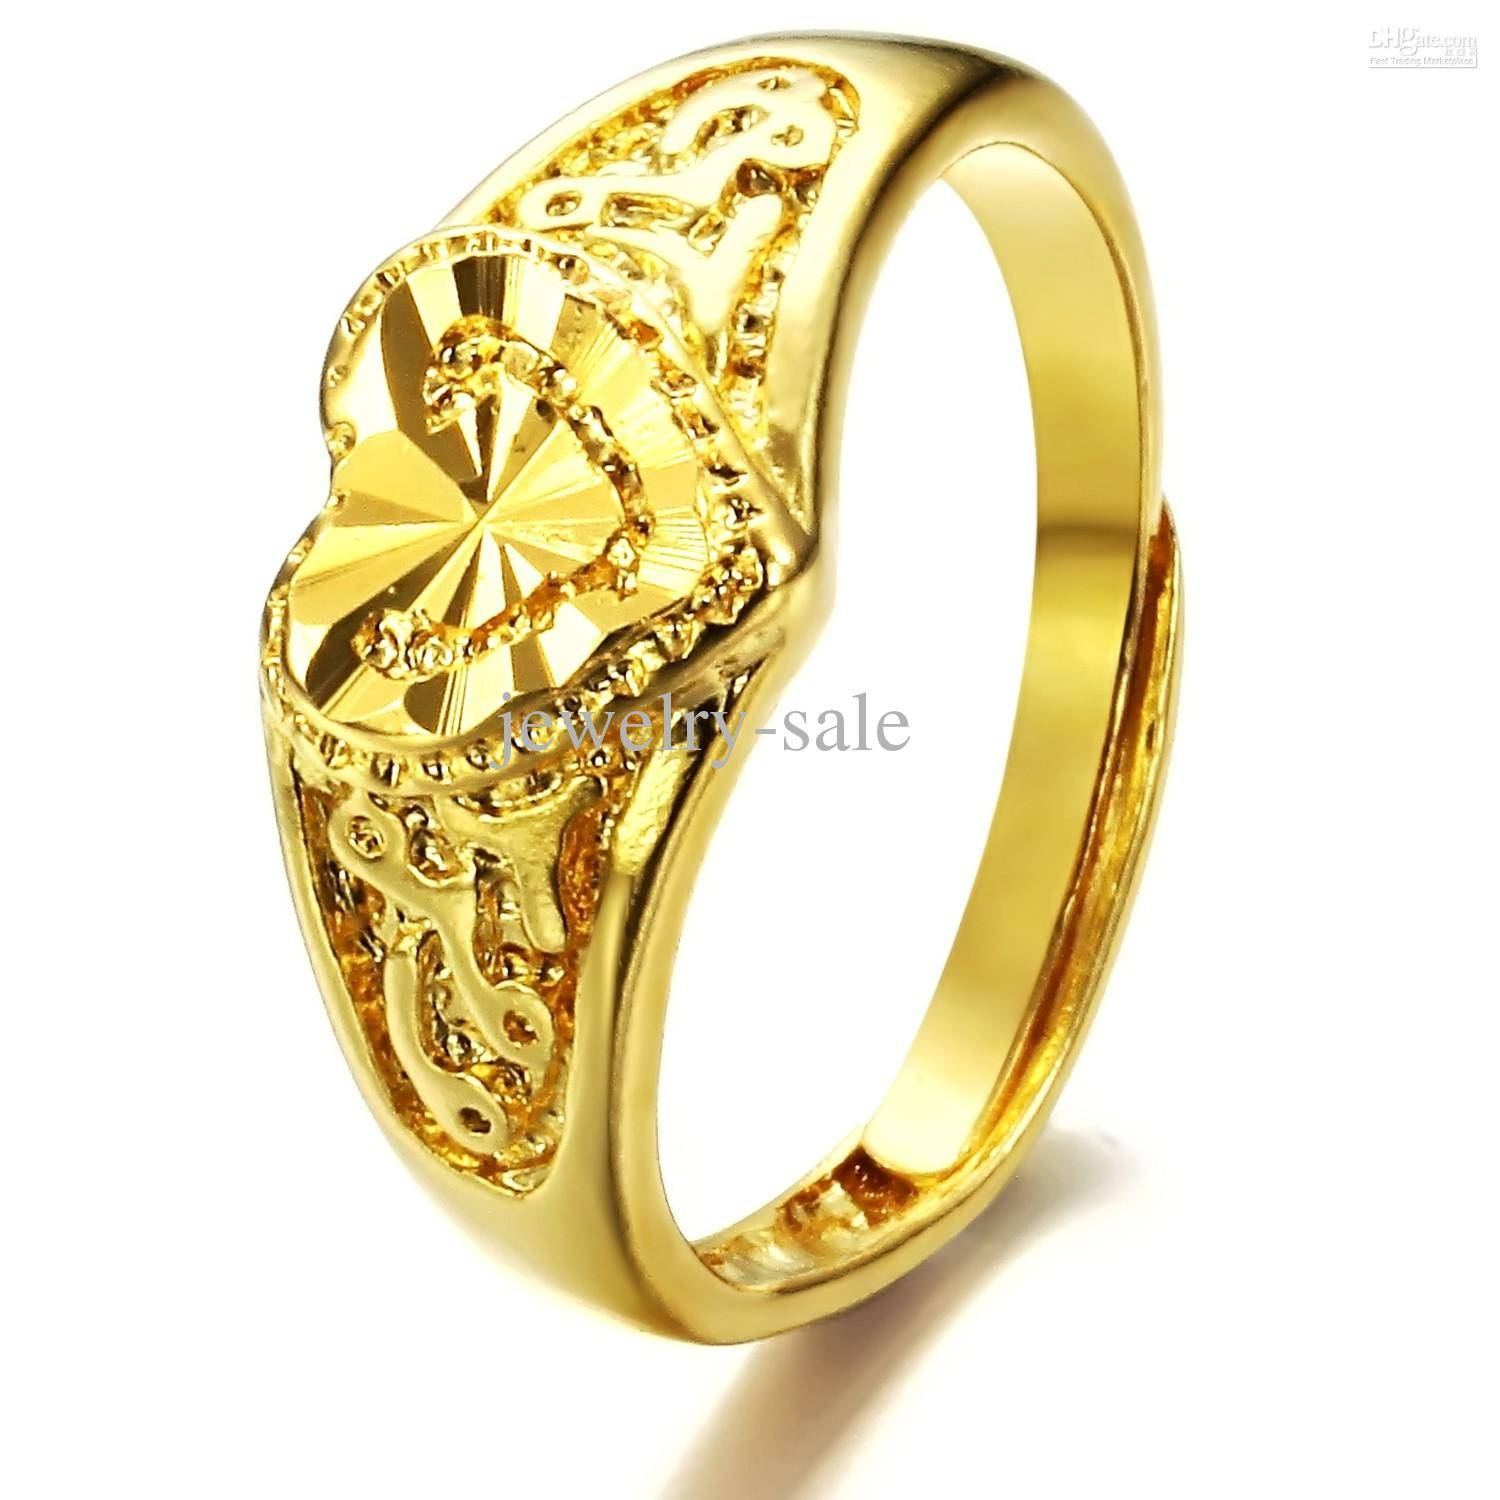 2017 Hot Sale Plating 18K Yellow Gold Rings Adjustable Wedding Within 18K Gold Wedding Rings (View 3 of 15)